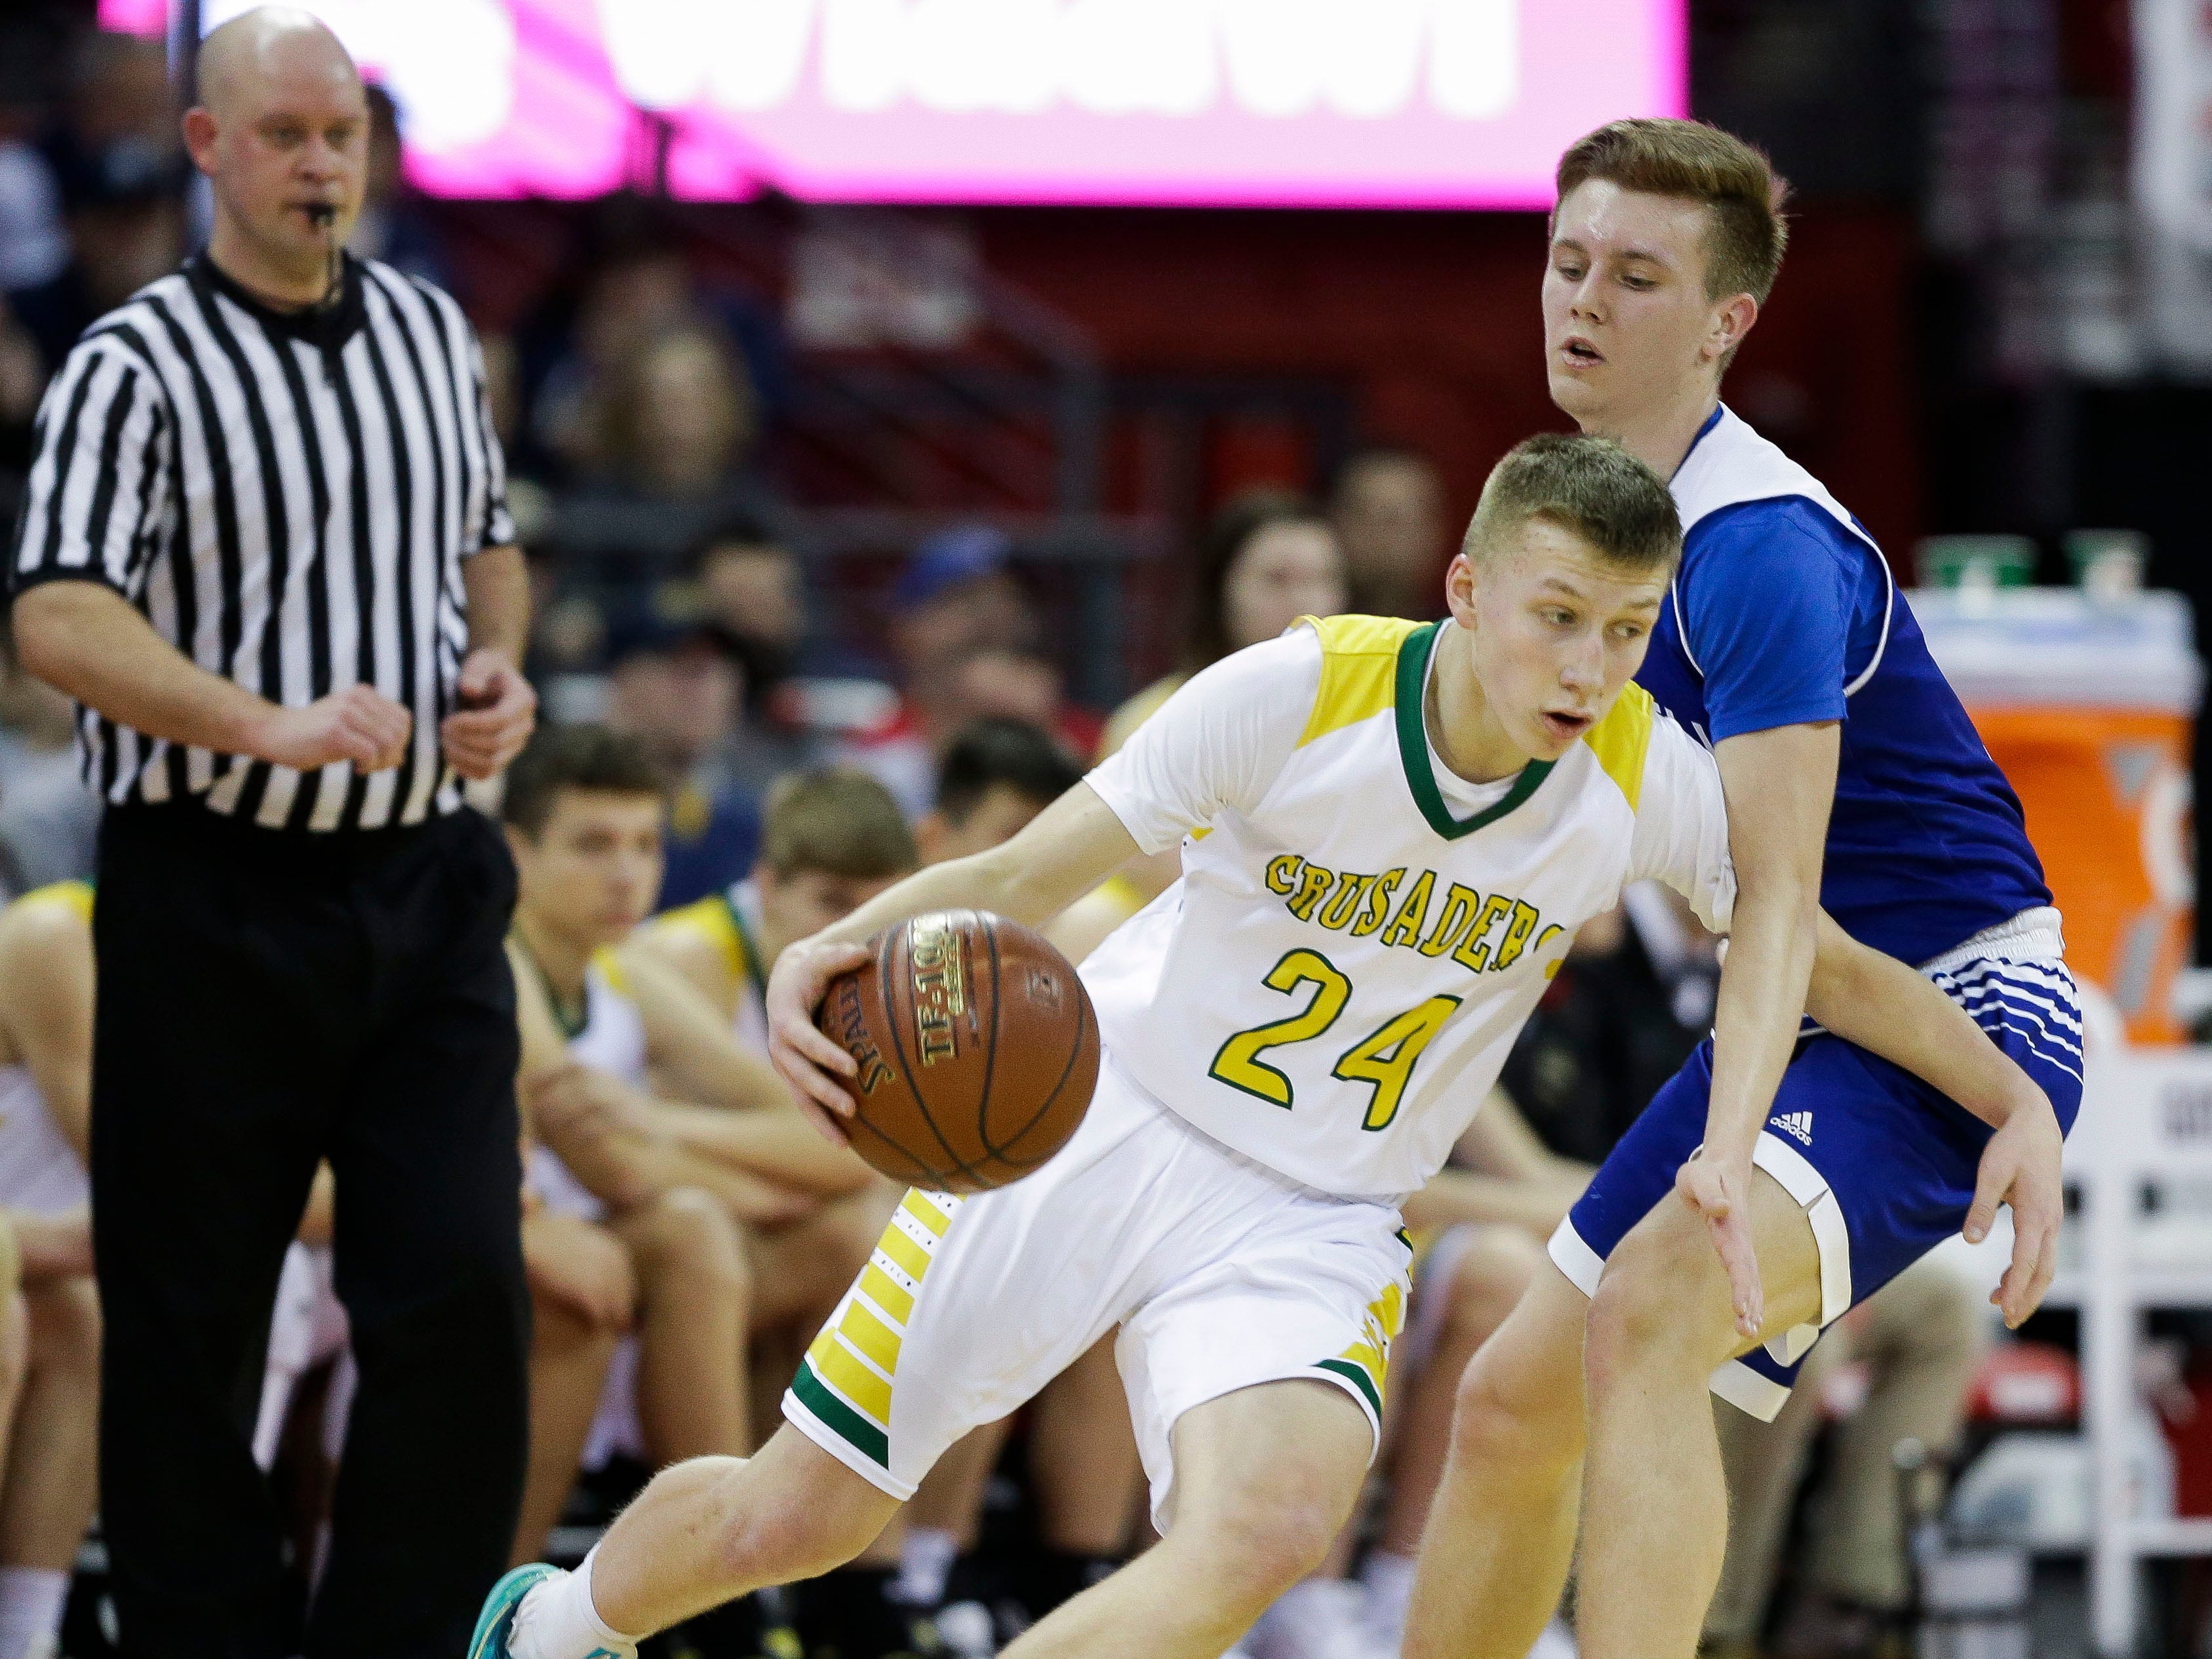 Sheboygan Lutheran High School's Casey Verhagen (24) tries to dribble past McDonell Central Catholic High School's Jaebin Bourget (5) in a Division 5 boys basketball state semifinal on Friday, March 15, 2019, at the Kohl Center in Madison, Wis.